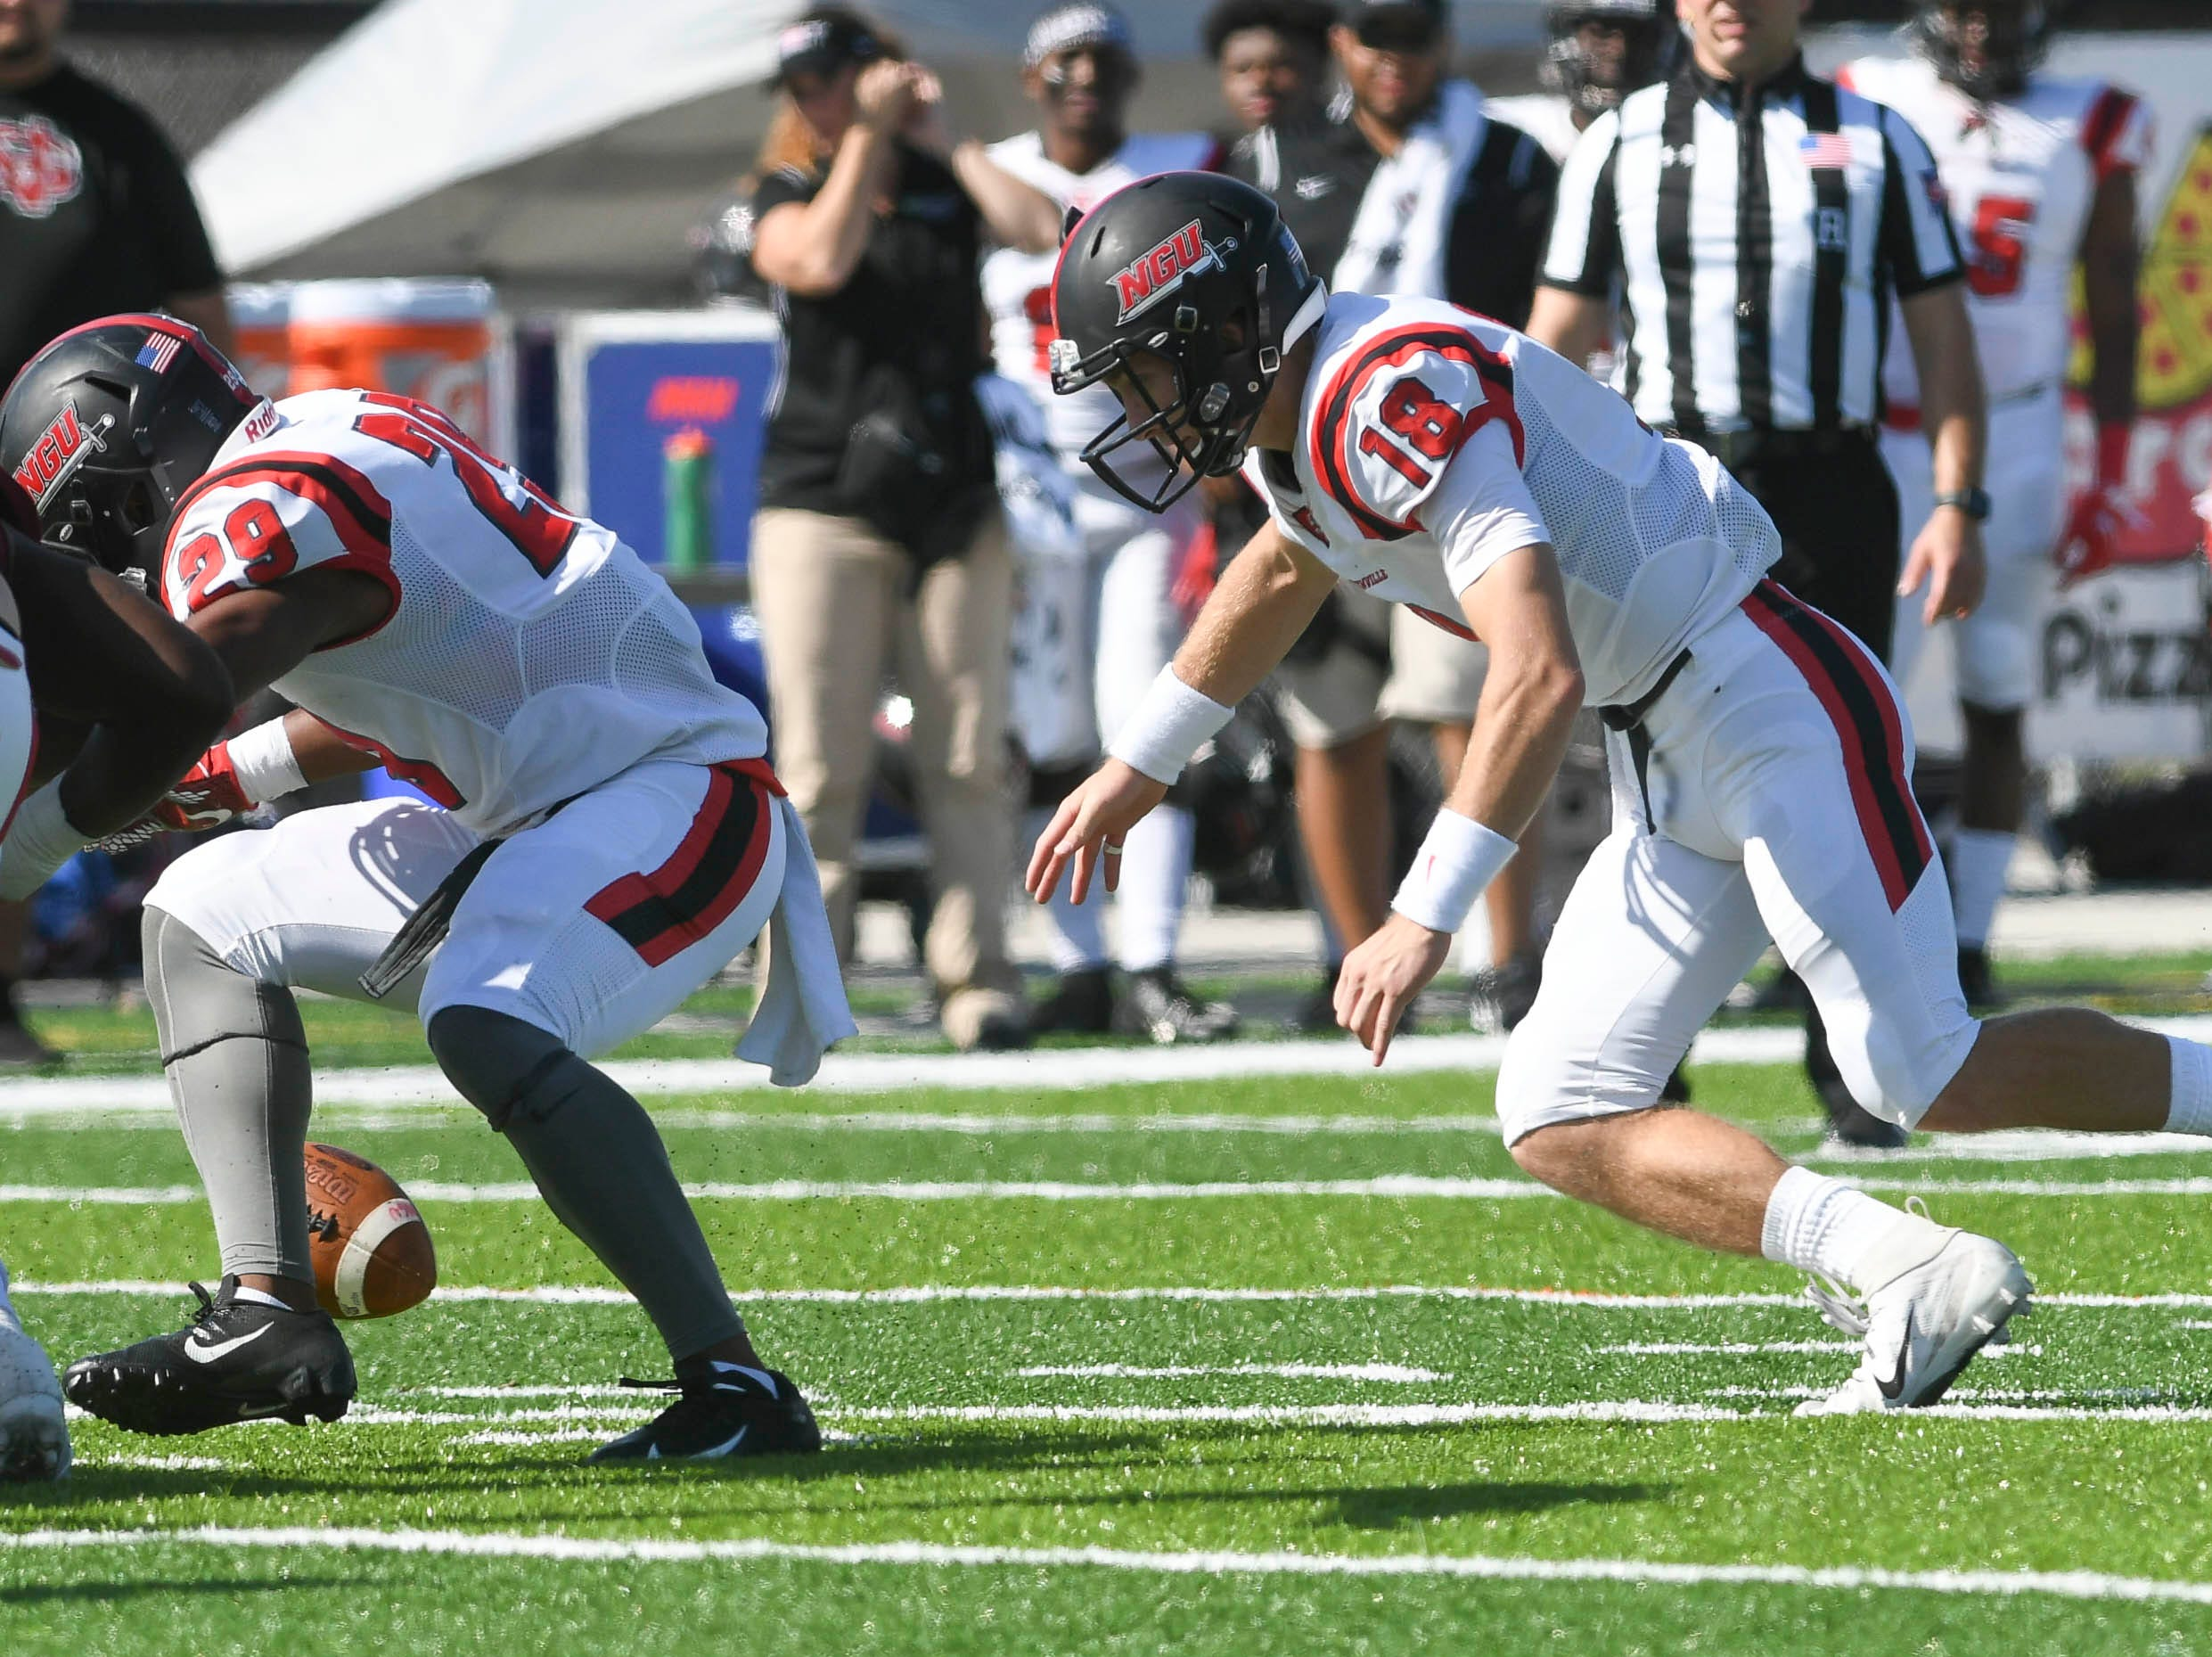 EJ Humphrey and Donnie Baker of North Greenville chase a fumble during Saturday's game.